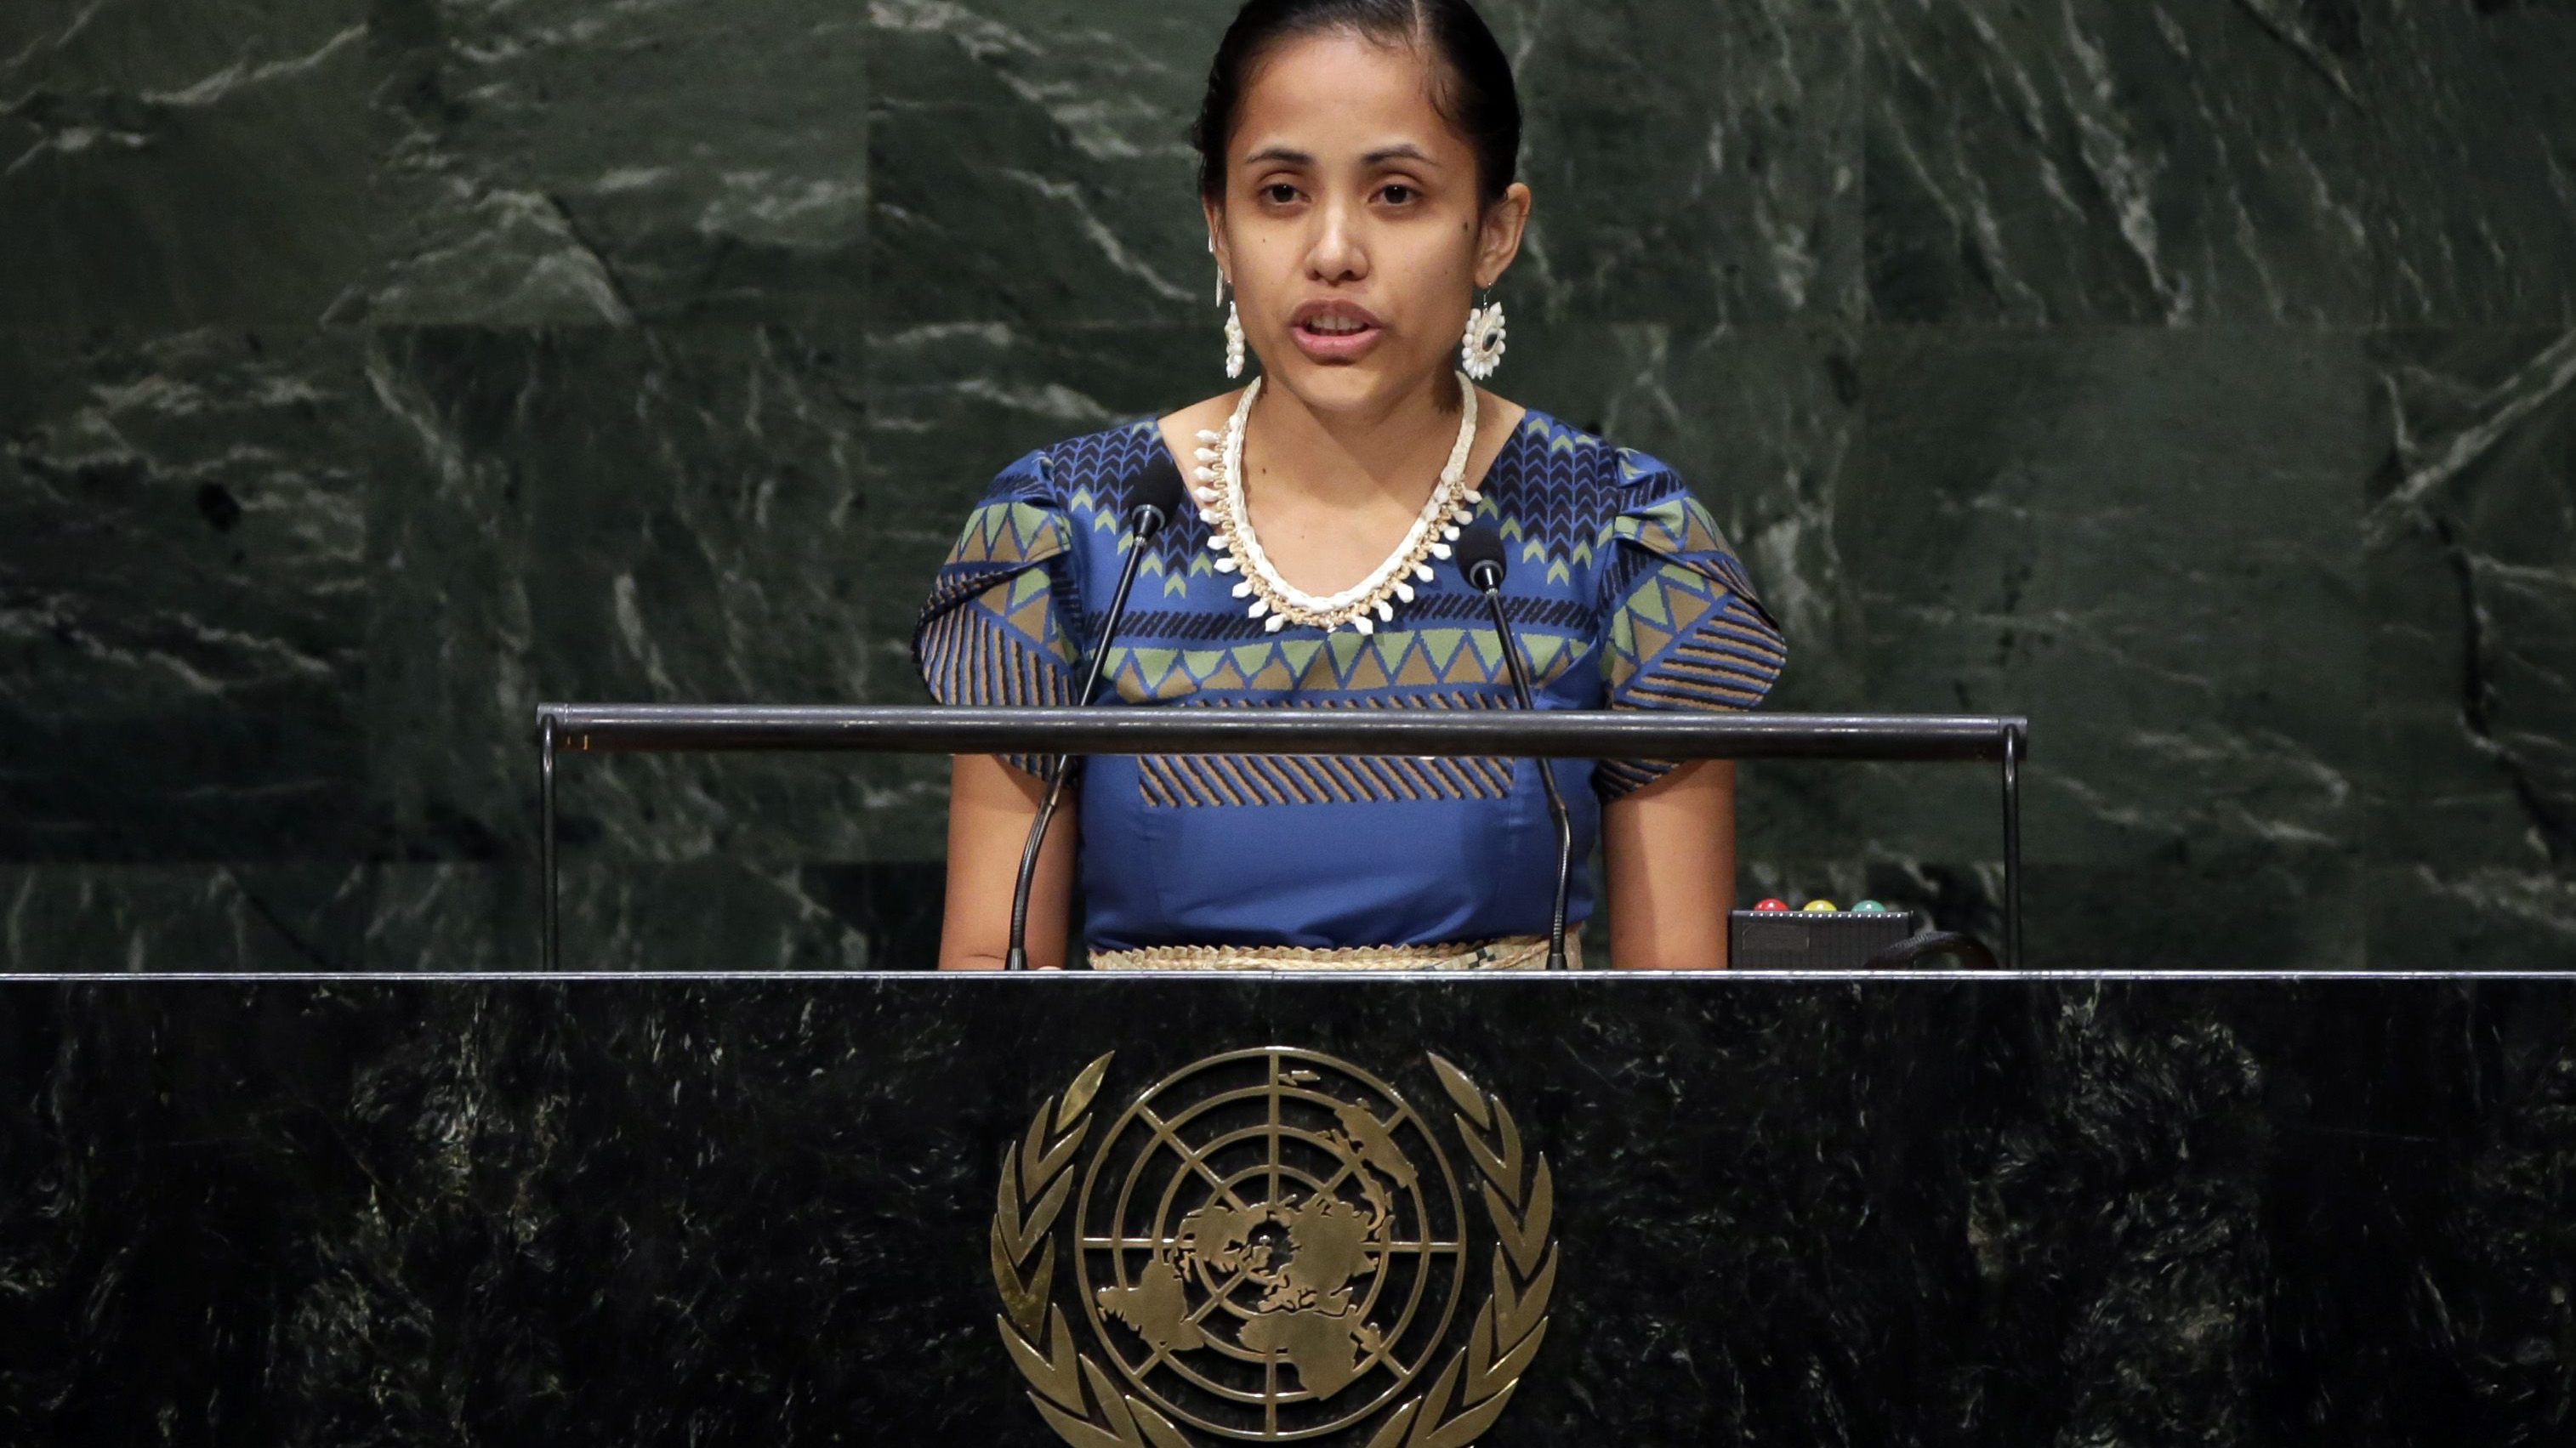 Kathy Jetnil-Kijiner, Civil Society Representative from the Marshall Islands, addresses the Climate Summit, at United Nations headquarters, Tuesday, Sept. 23, 2014. (AP Photo/Richard Drew)